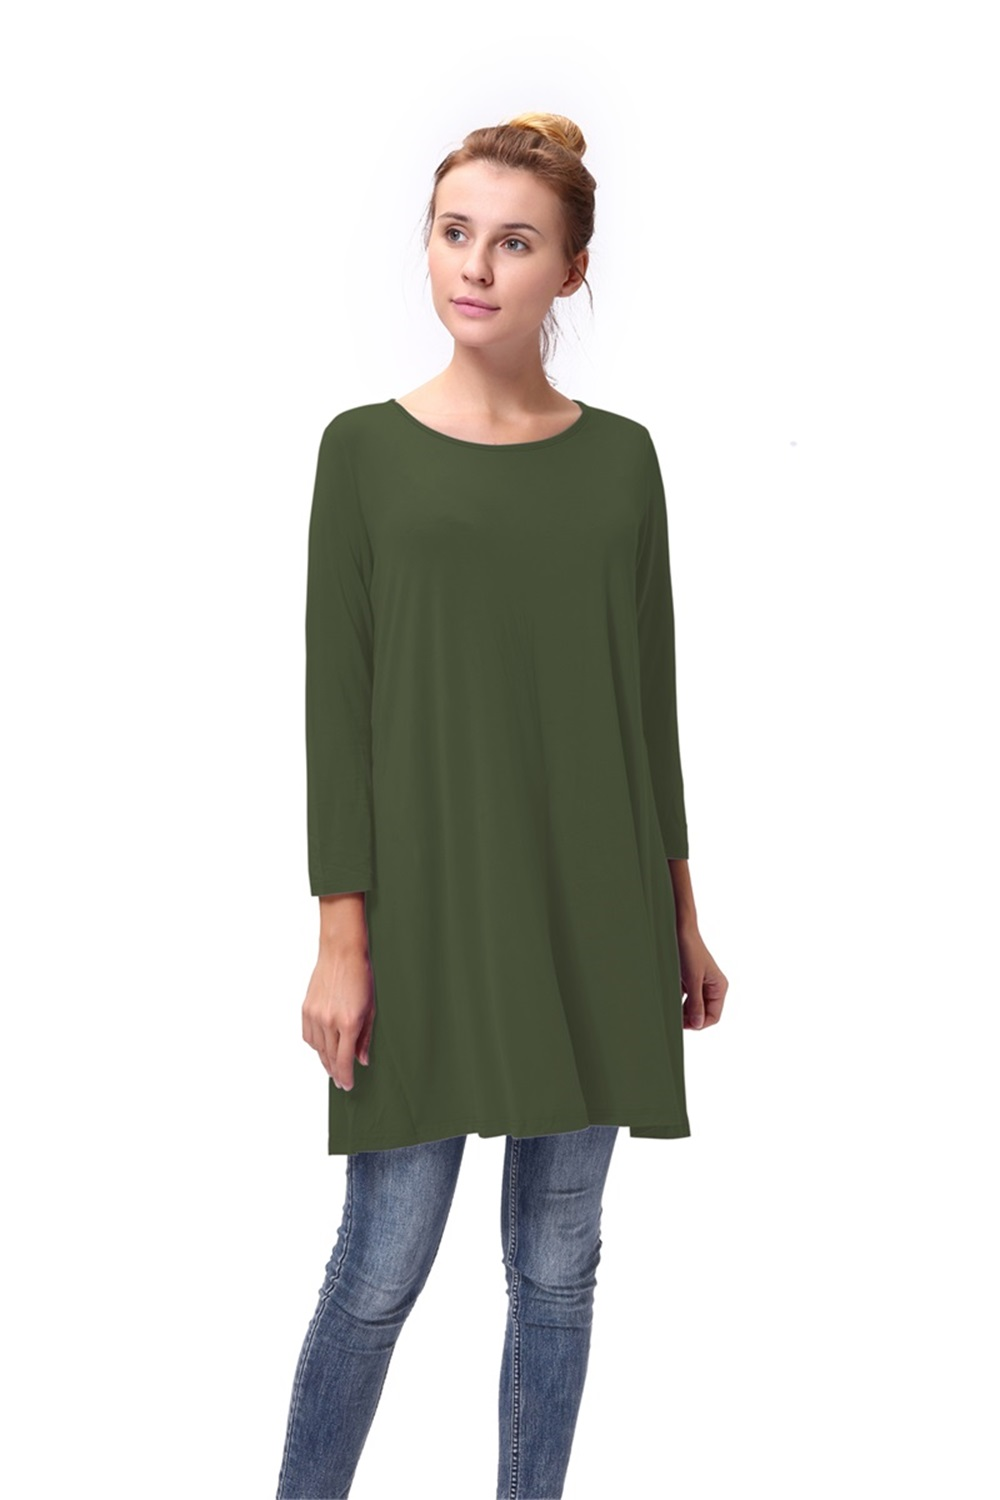 Women-Casual-Round-Neck-3-4-Long-Sleeve-Trapeze-Tunic-Top-Lady-Loose-Fit-Dress thumbnail 7